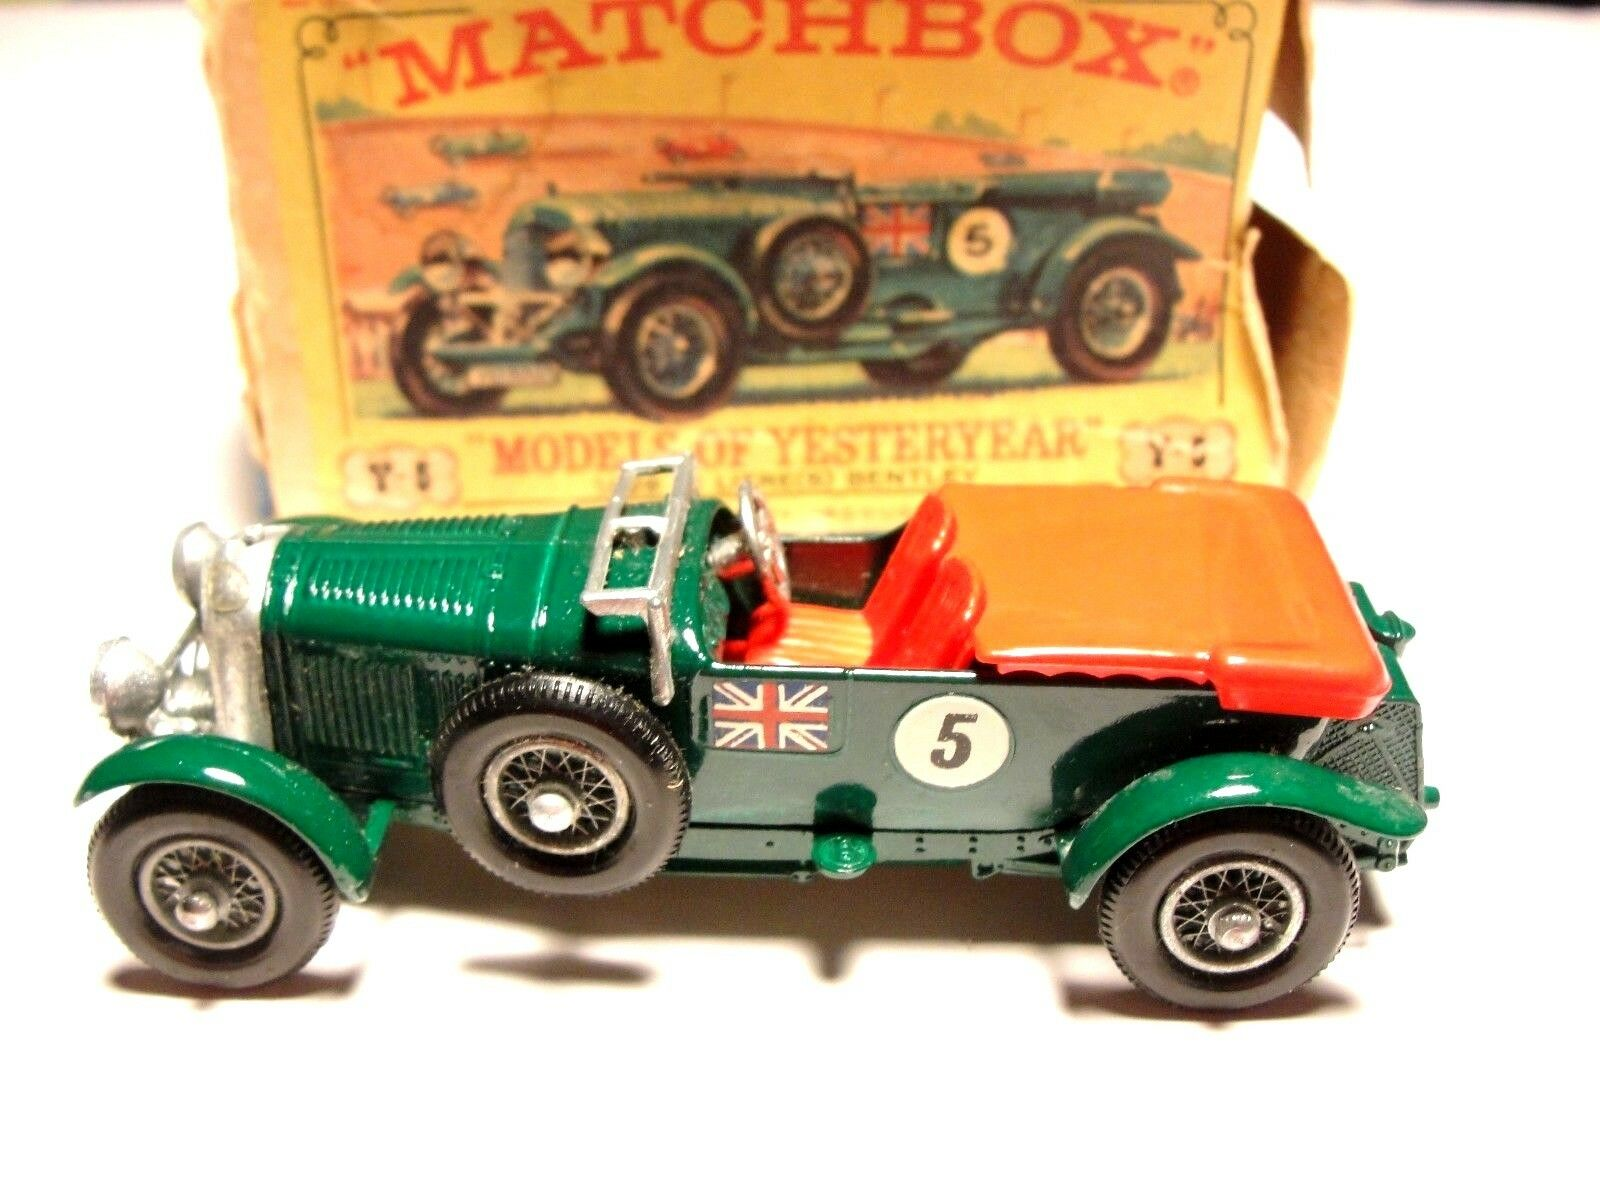 MATCHBOX YESTERYEAR Y-5-2 BENTLEY METALLIC APPLE GREEN WITH RED SEATS BOXED